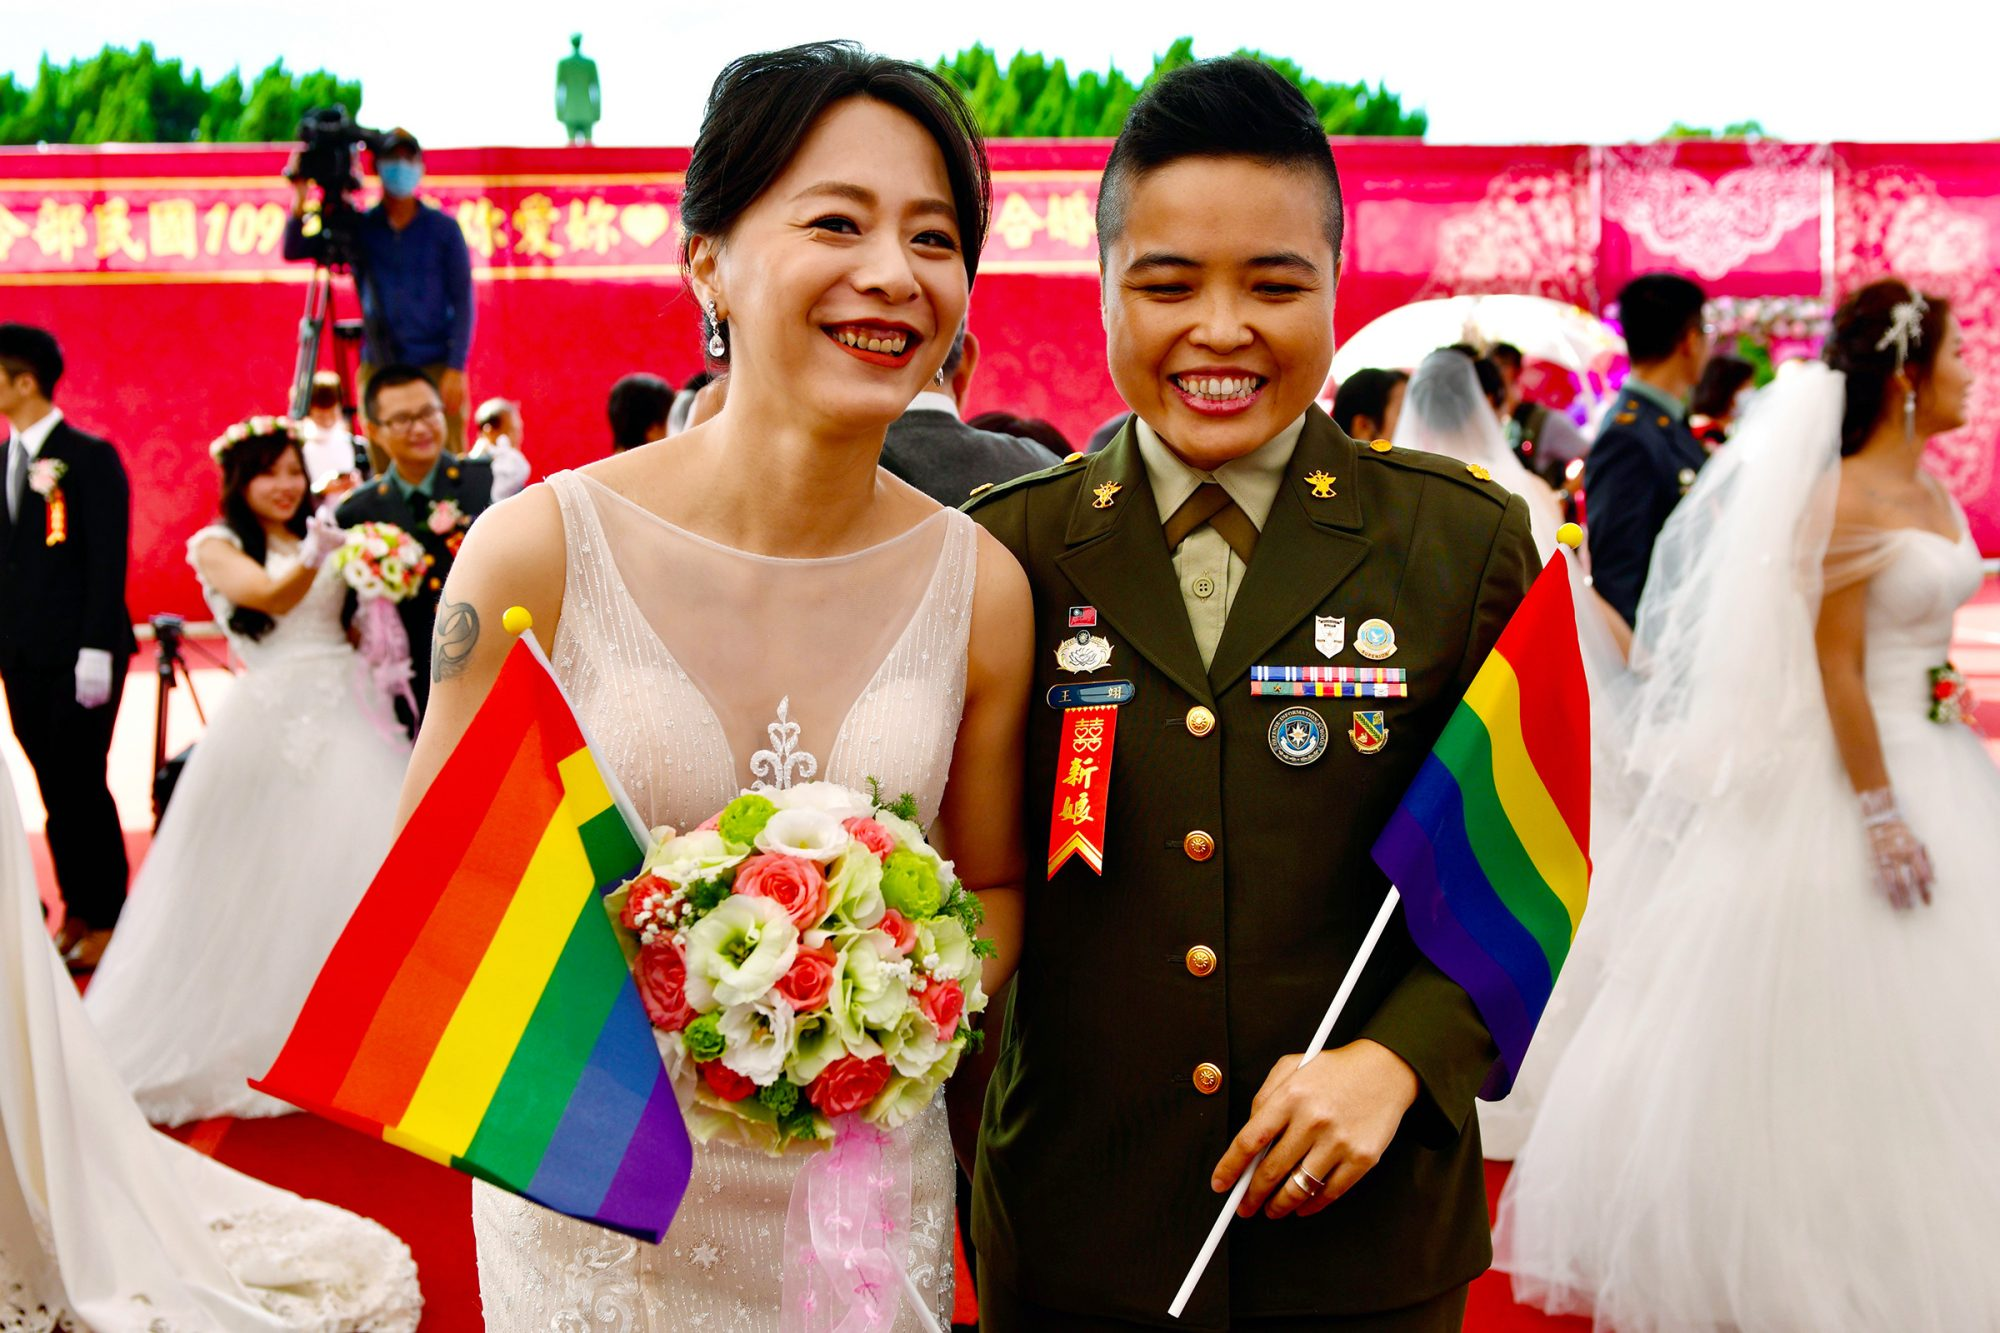 Newly-wedded same-sex couple Yi Wang (R) and Yumi Meng pose for a photograph during a mass wedding at Taiwan's Army Command Headquarters